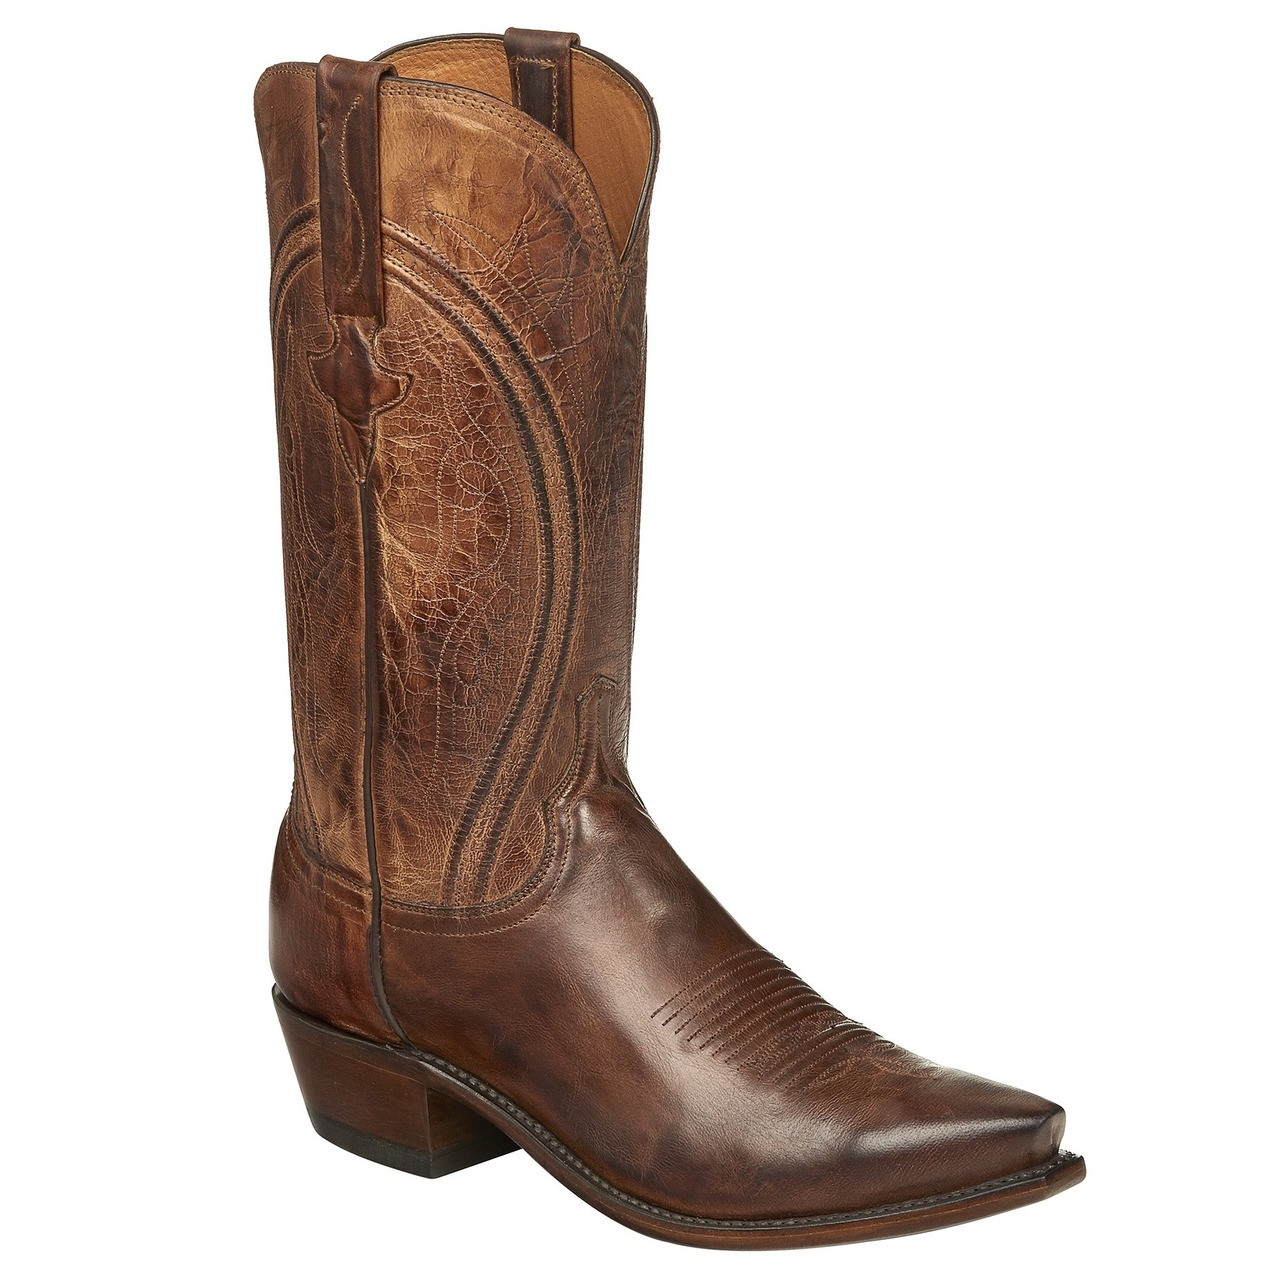 672e95f34fd Lucchese Men's Clint Antique Goat Cowboy Boots - Peanut Brittle